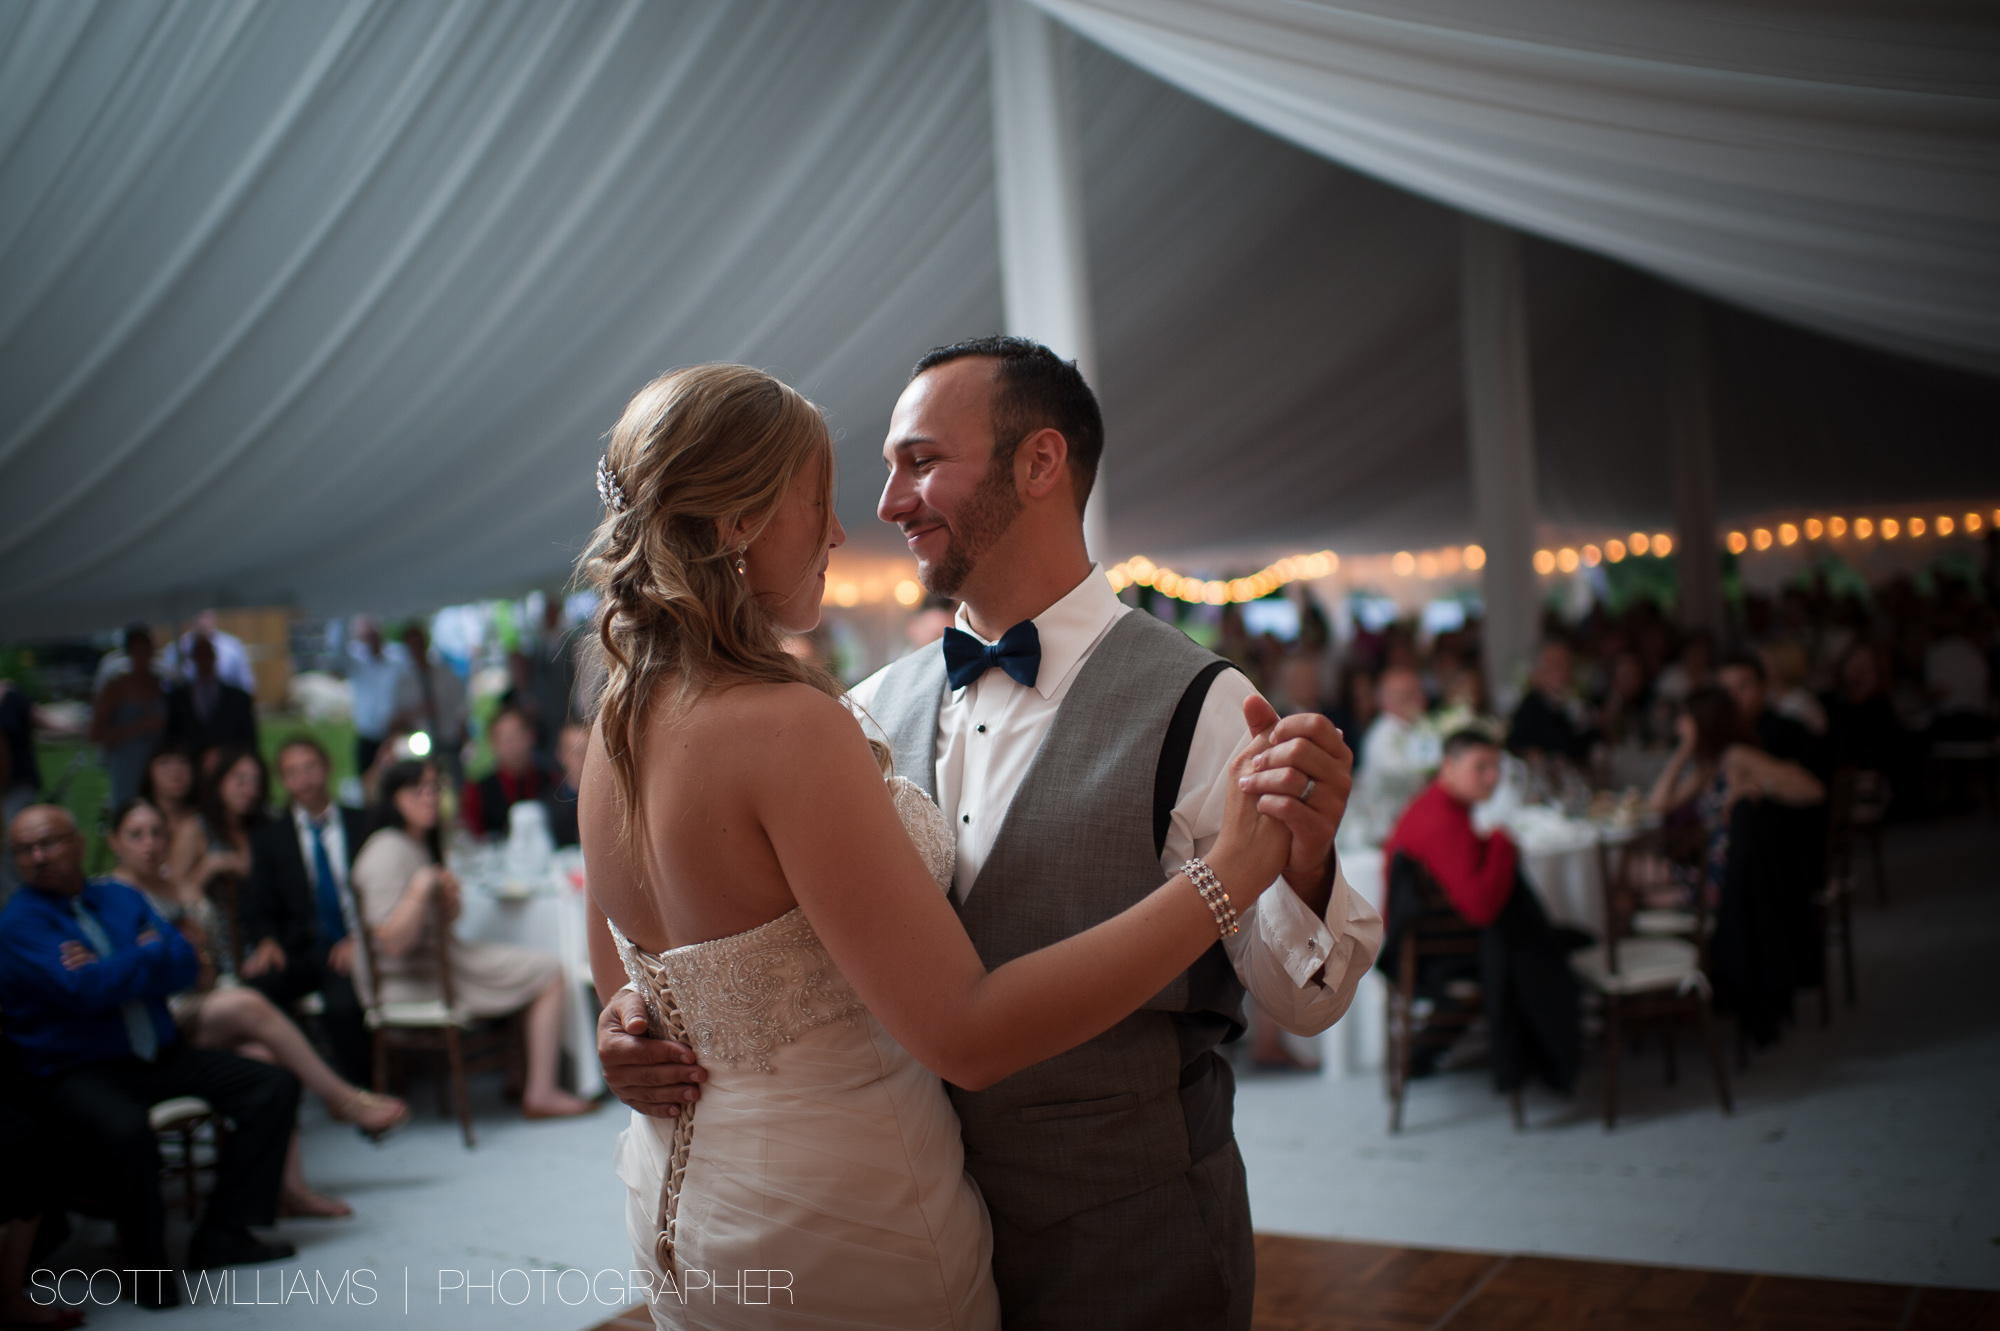 laura_nick_wedding_facebook-069.jpg